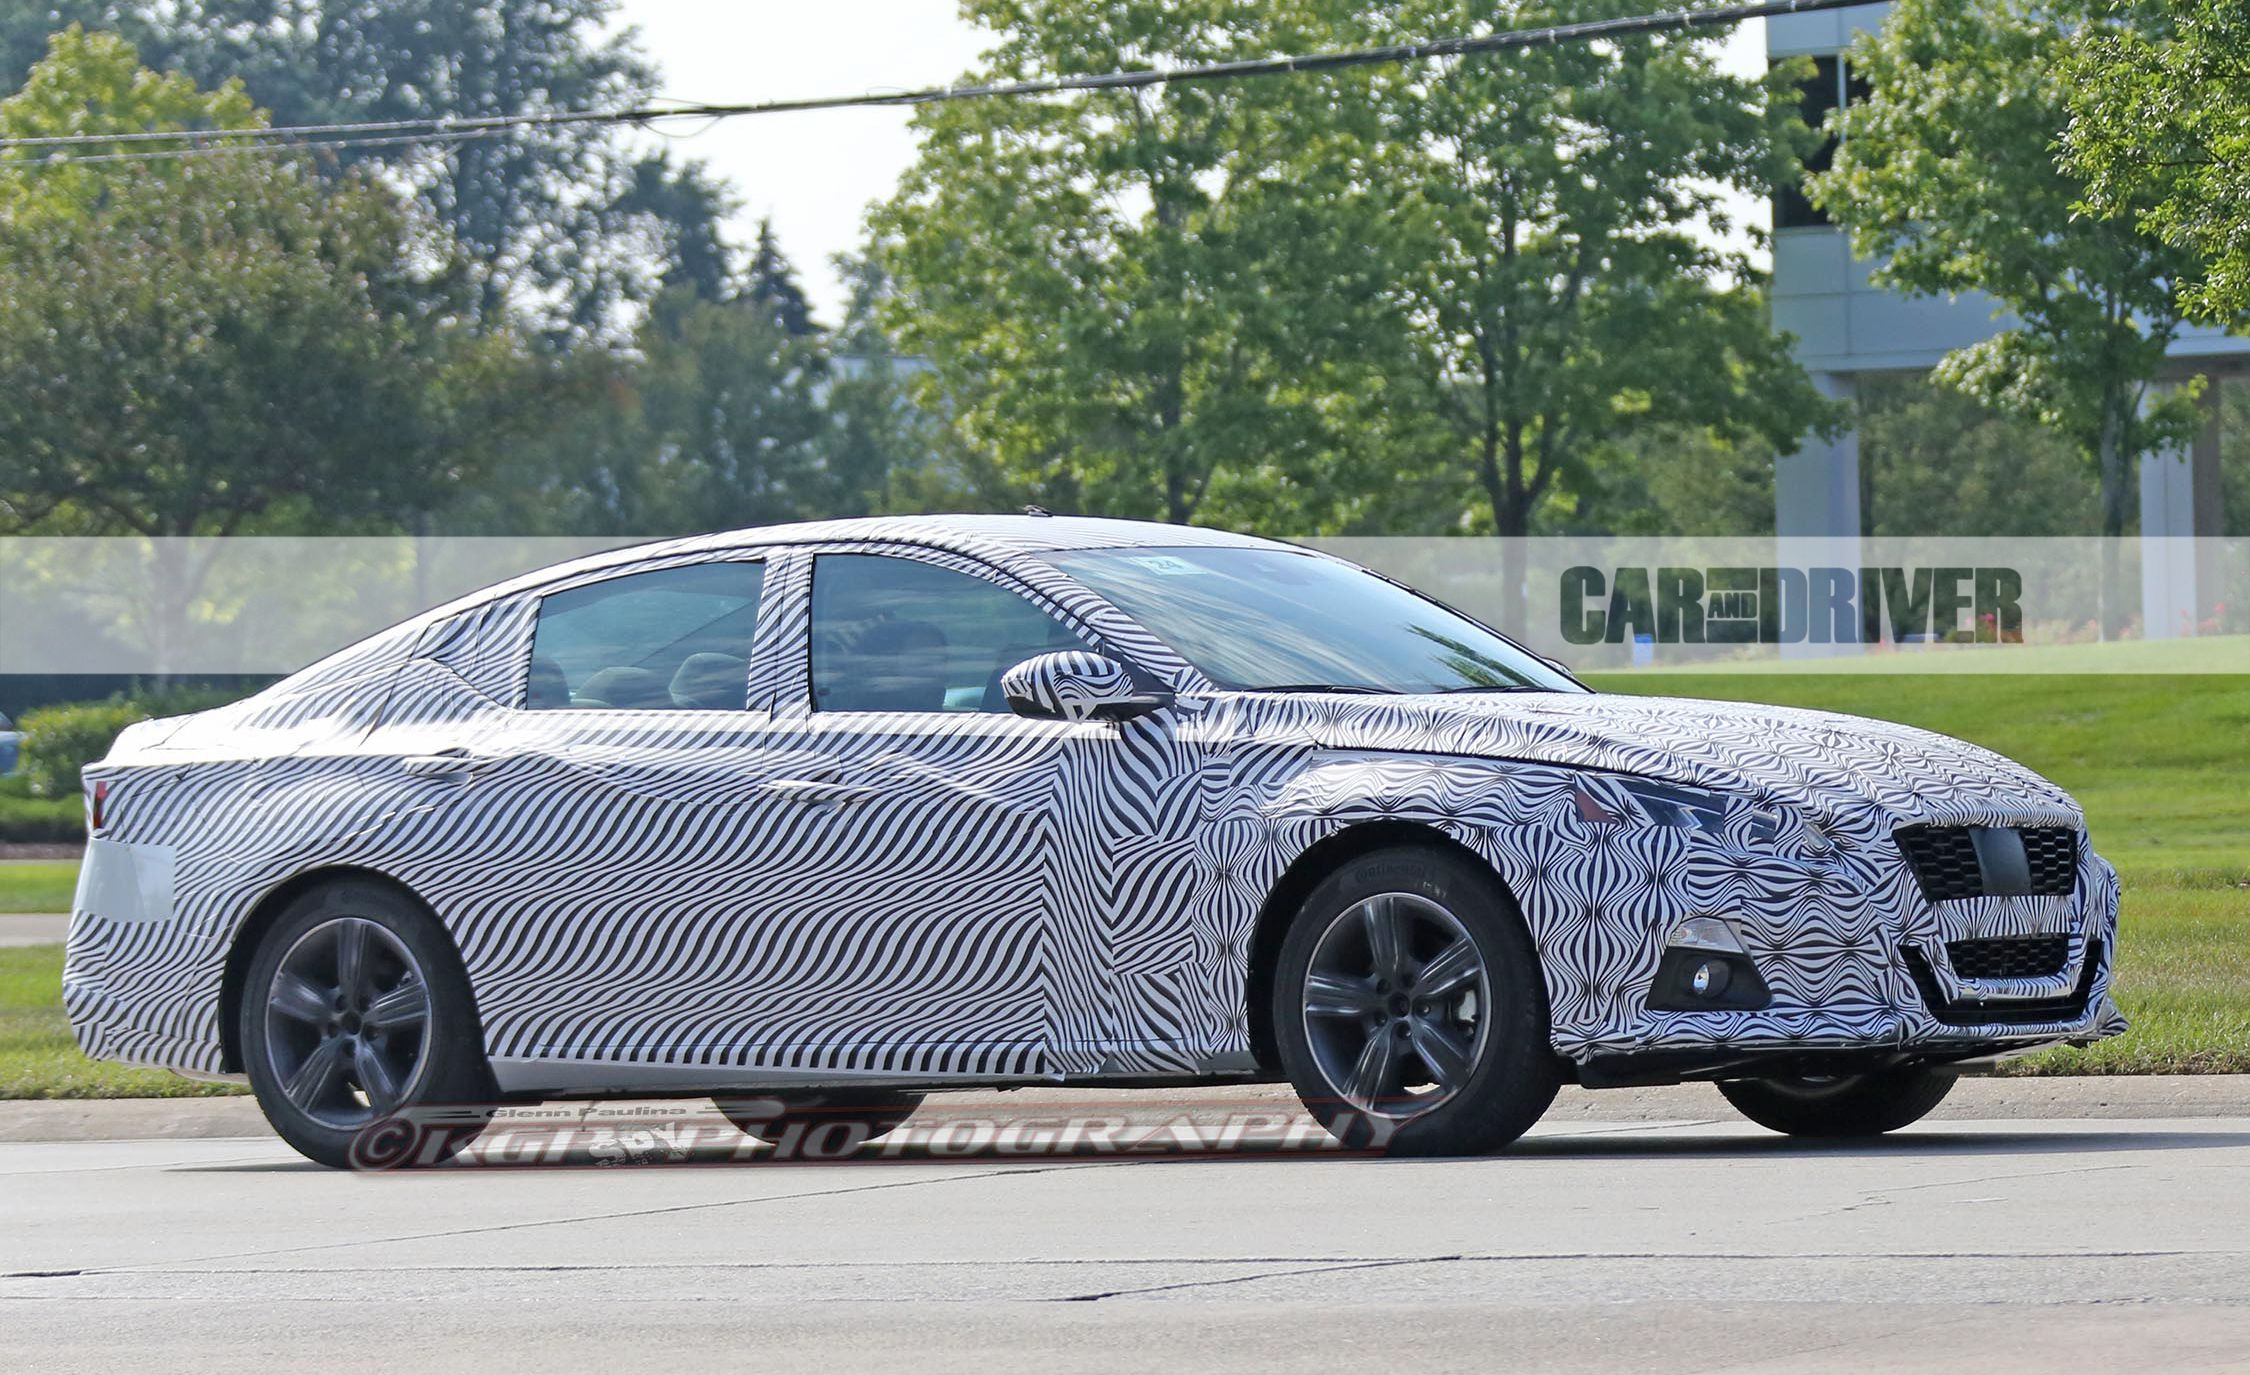 2019 Nissan Altima Spied, Previews Big Overhaul